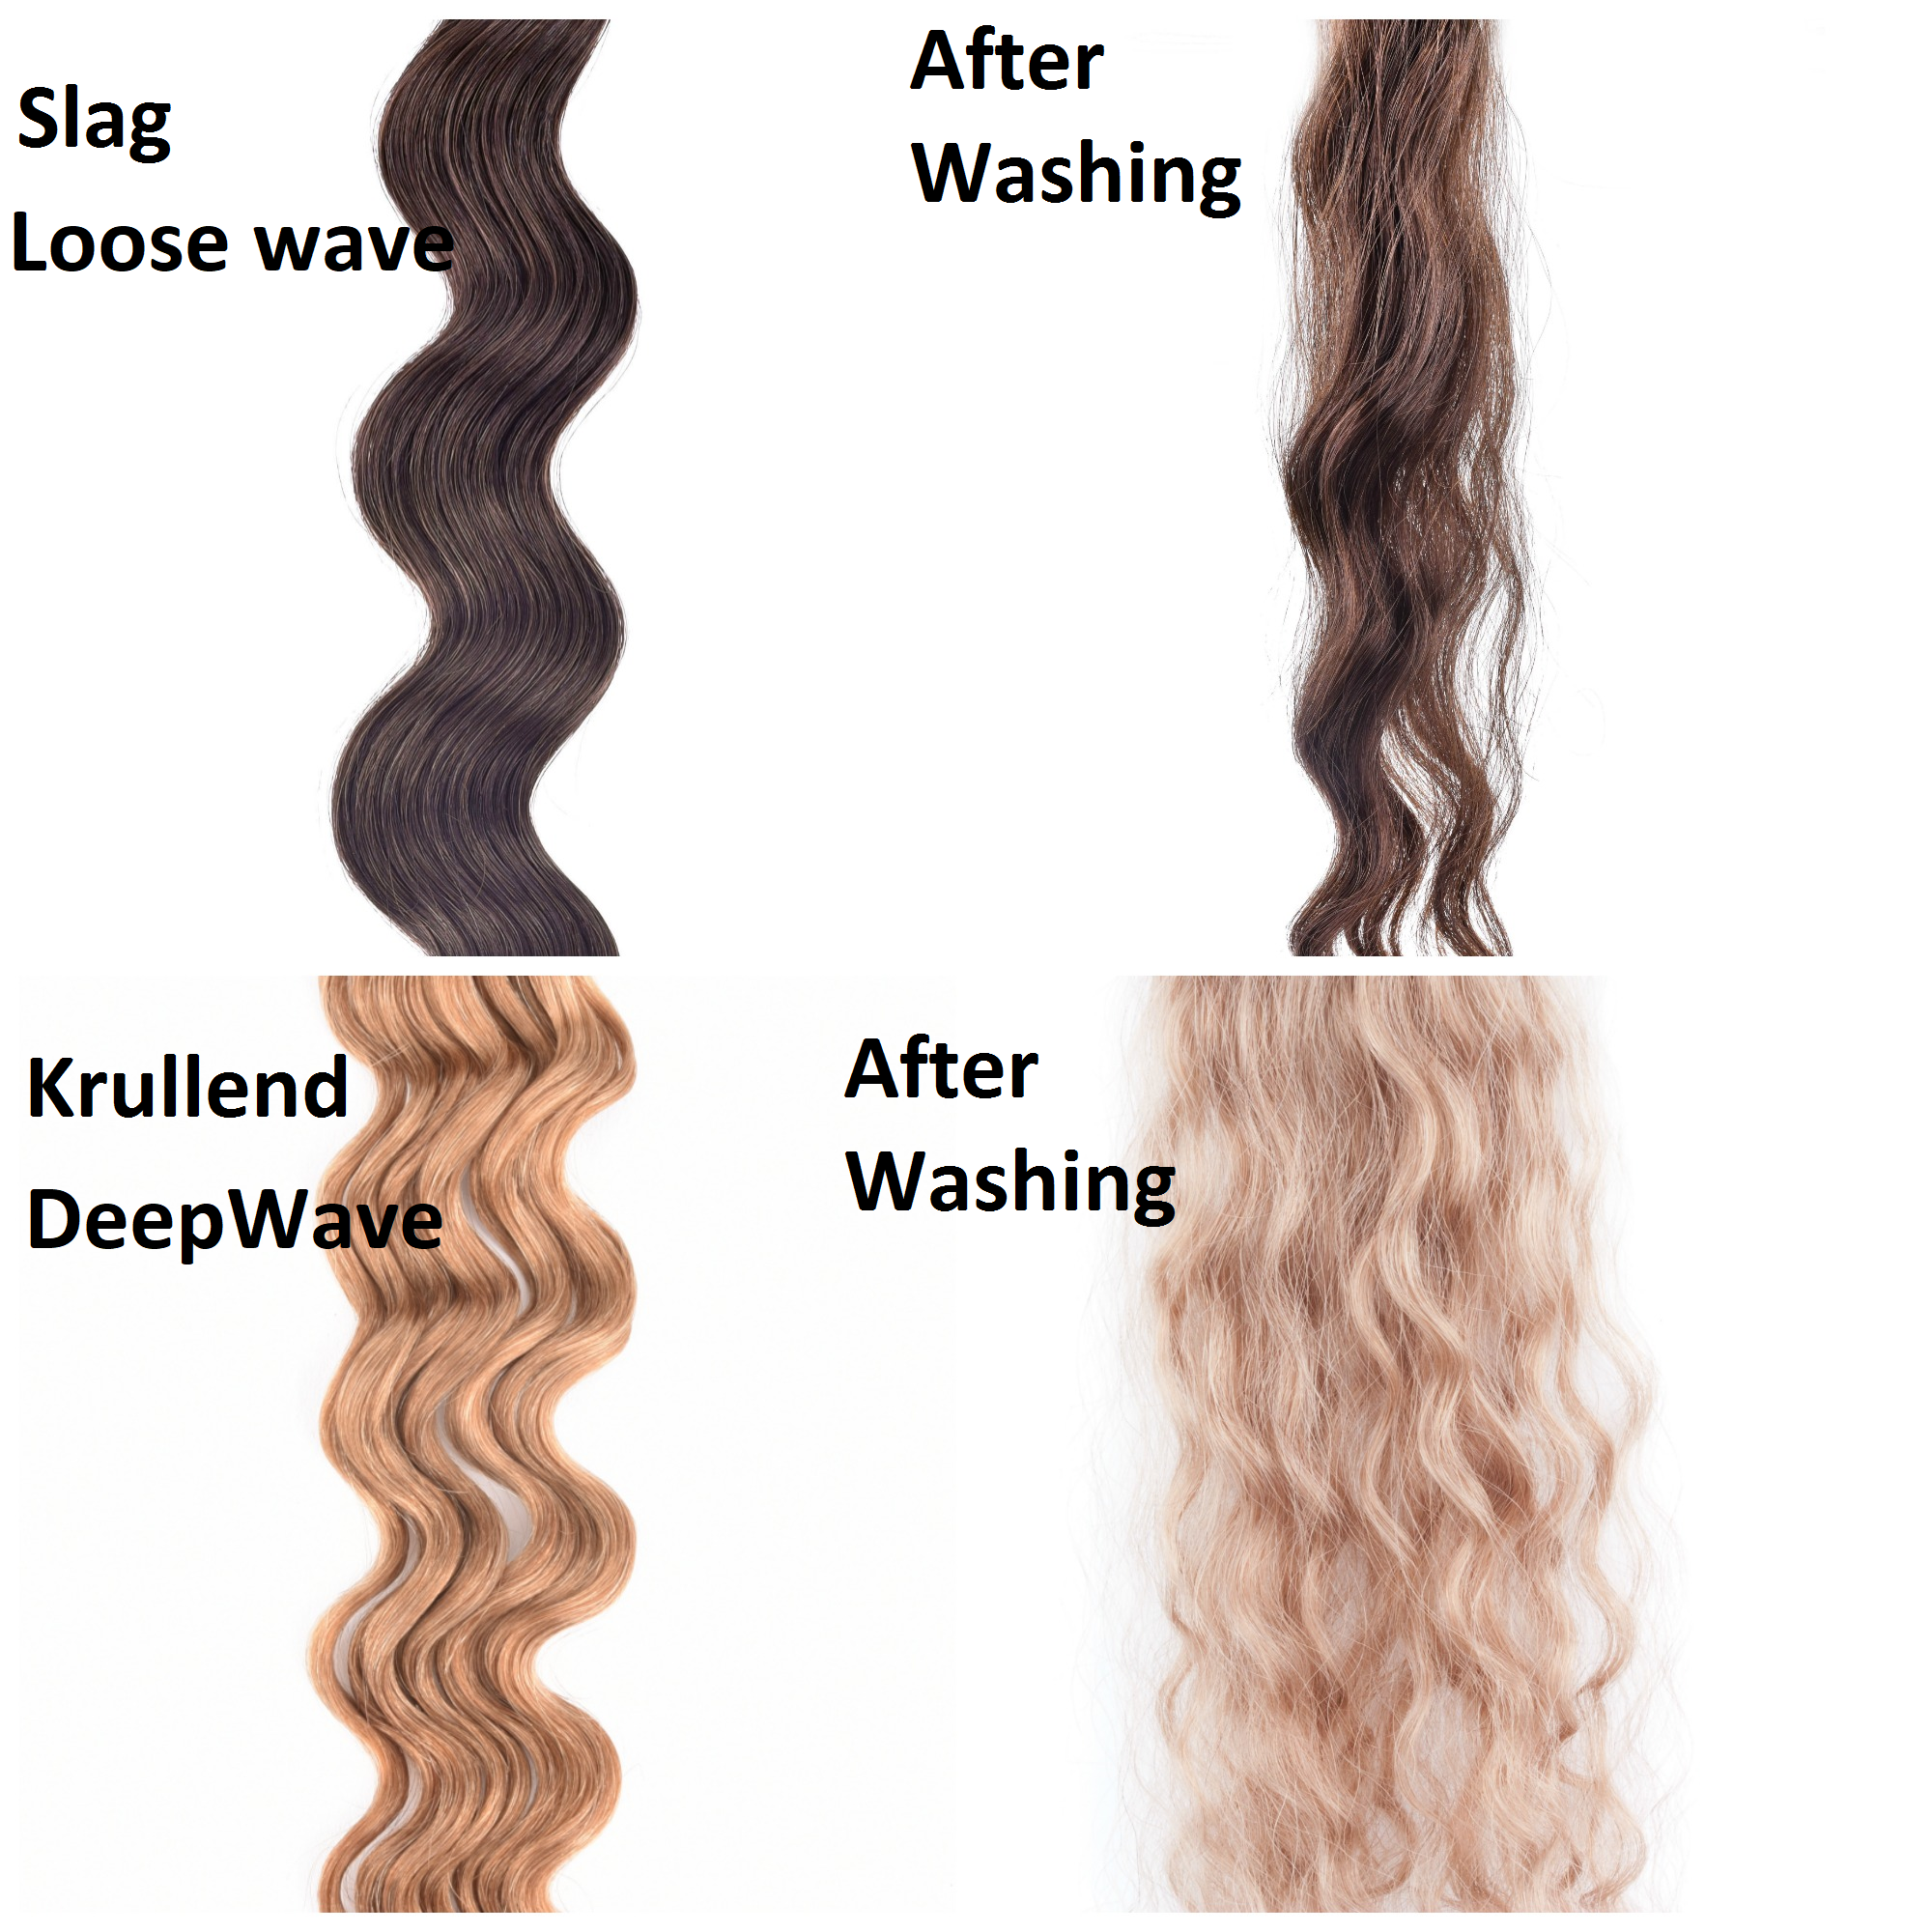 SilverFox Wax Extensions Loose Wave 55cm  #2 Deep Dark Brown